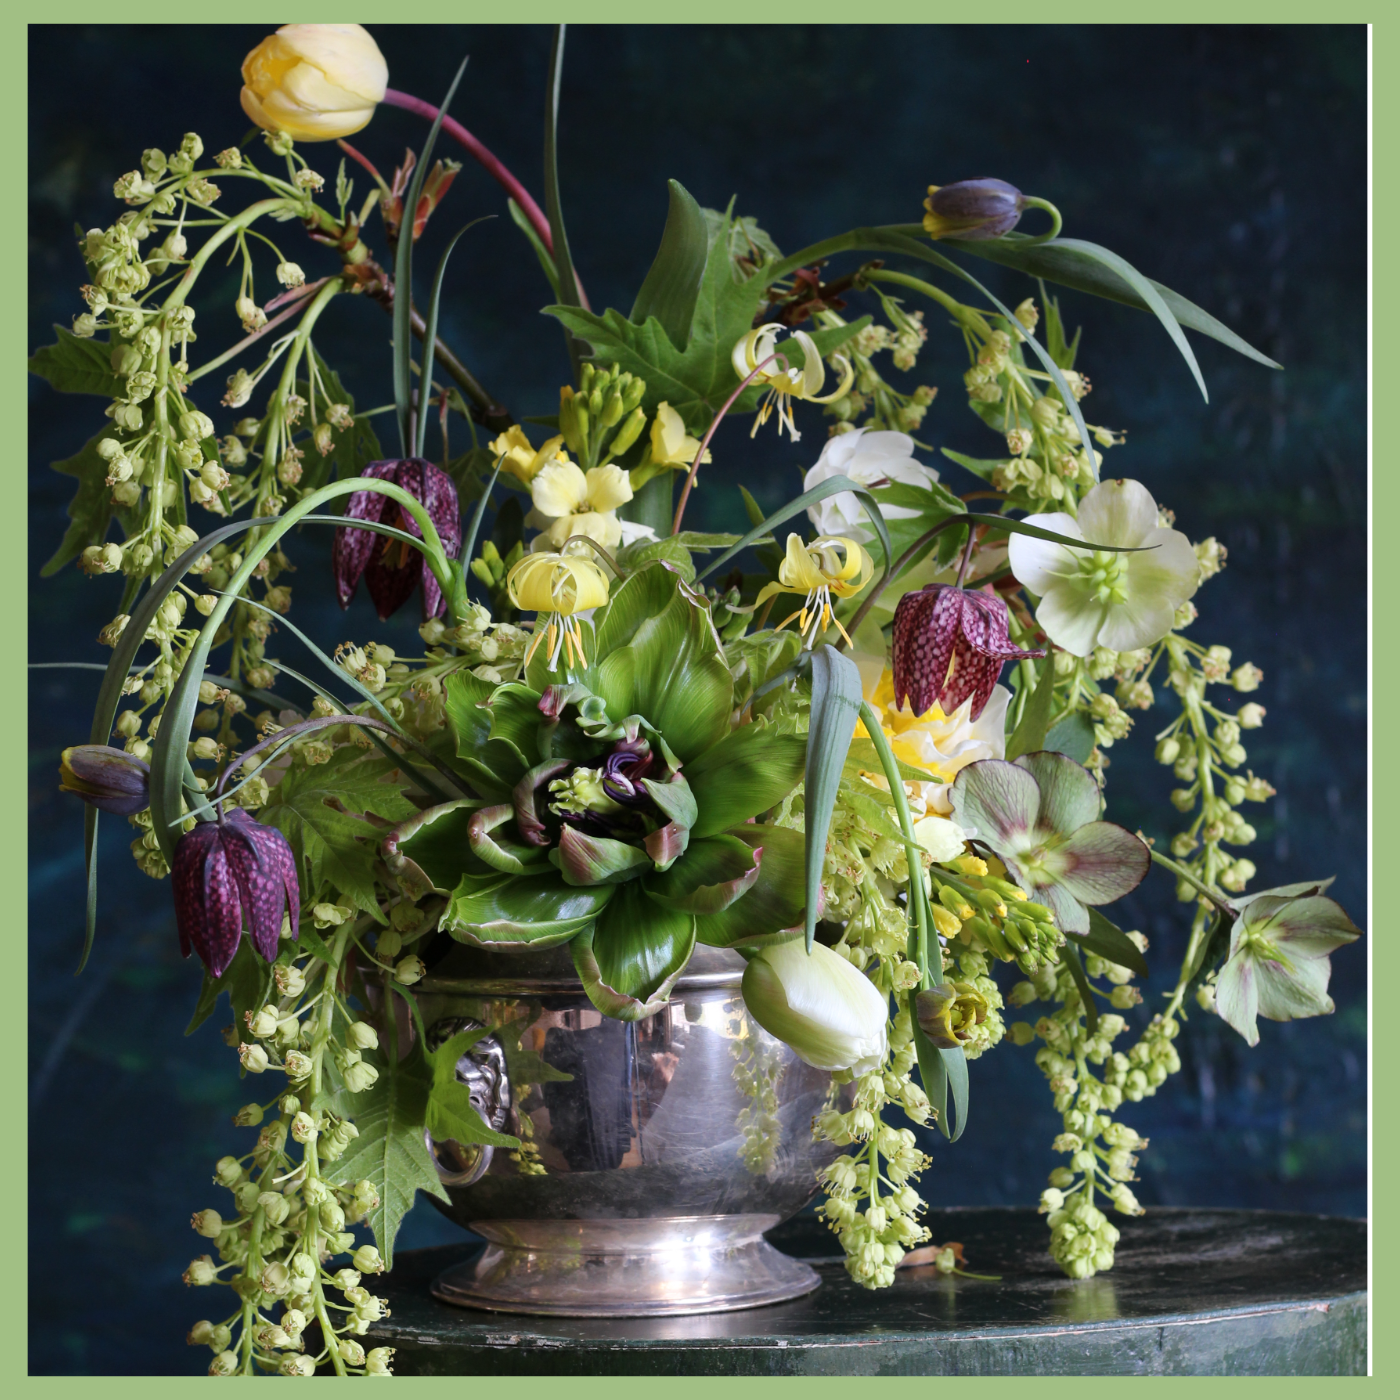 Floral arrangement with spring green and purple flowers